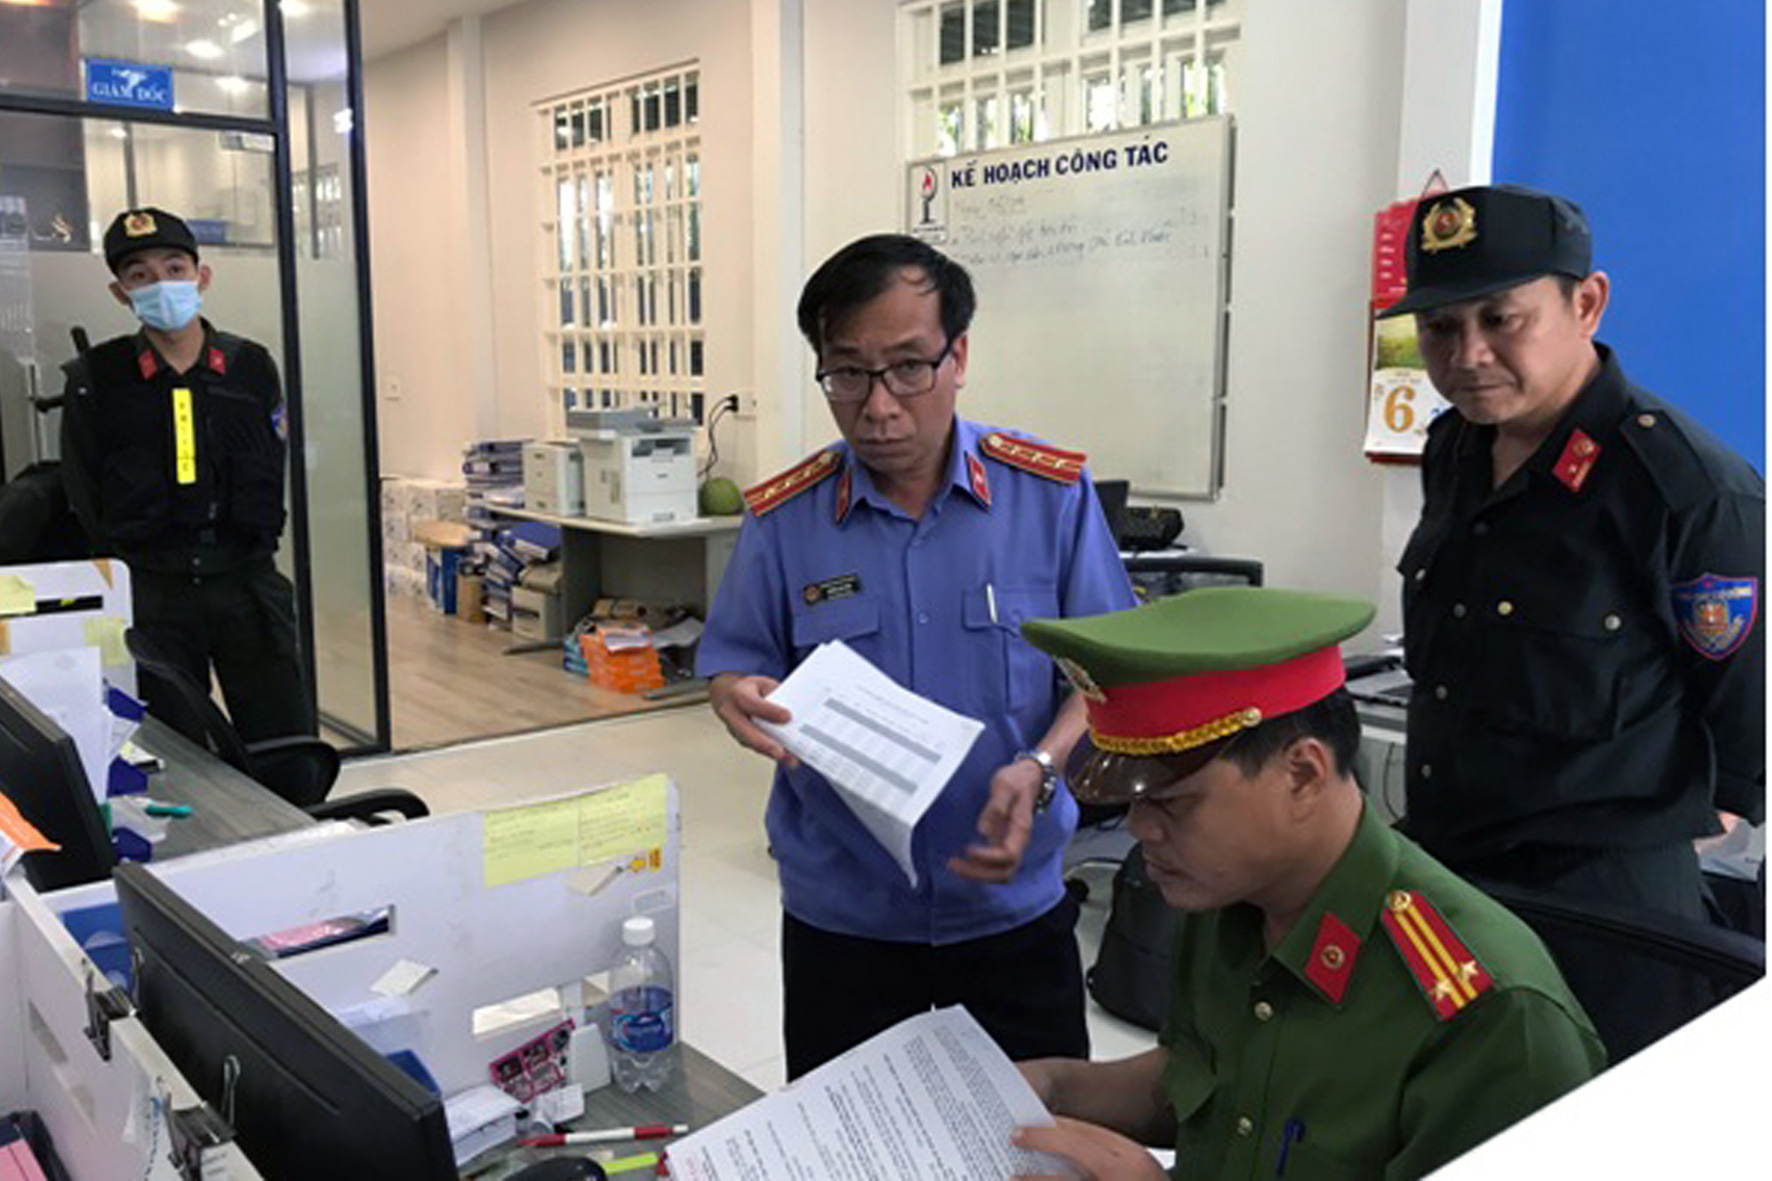 Police inspect the headquarters of Phuc Lam Petro JSC in Ho Chi Minh City, April 7, 2021 in this supplied photo